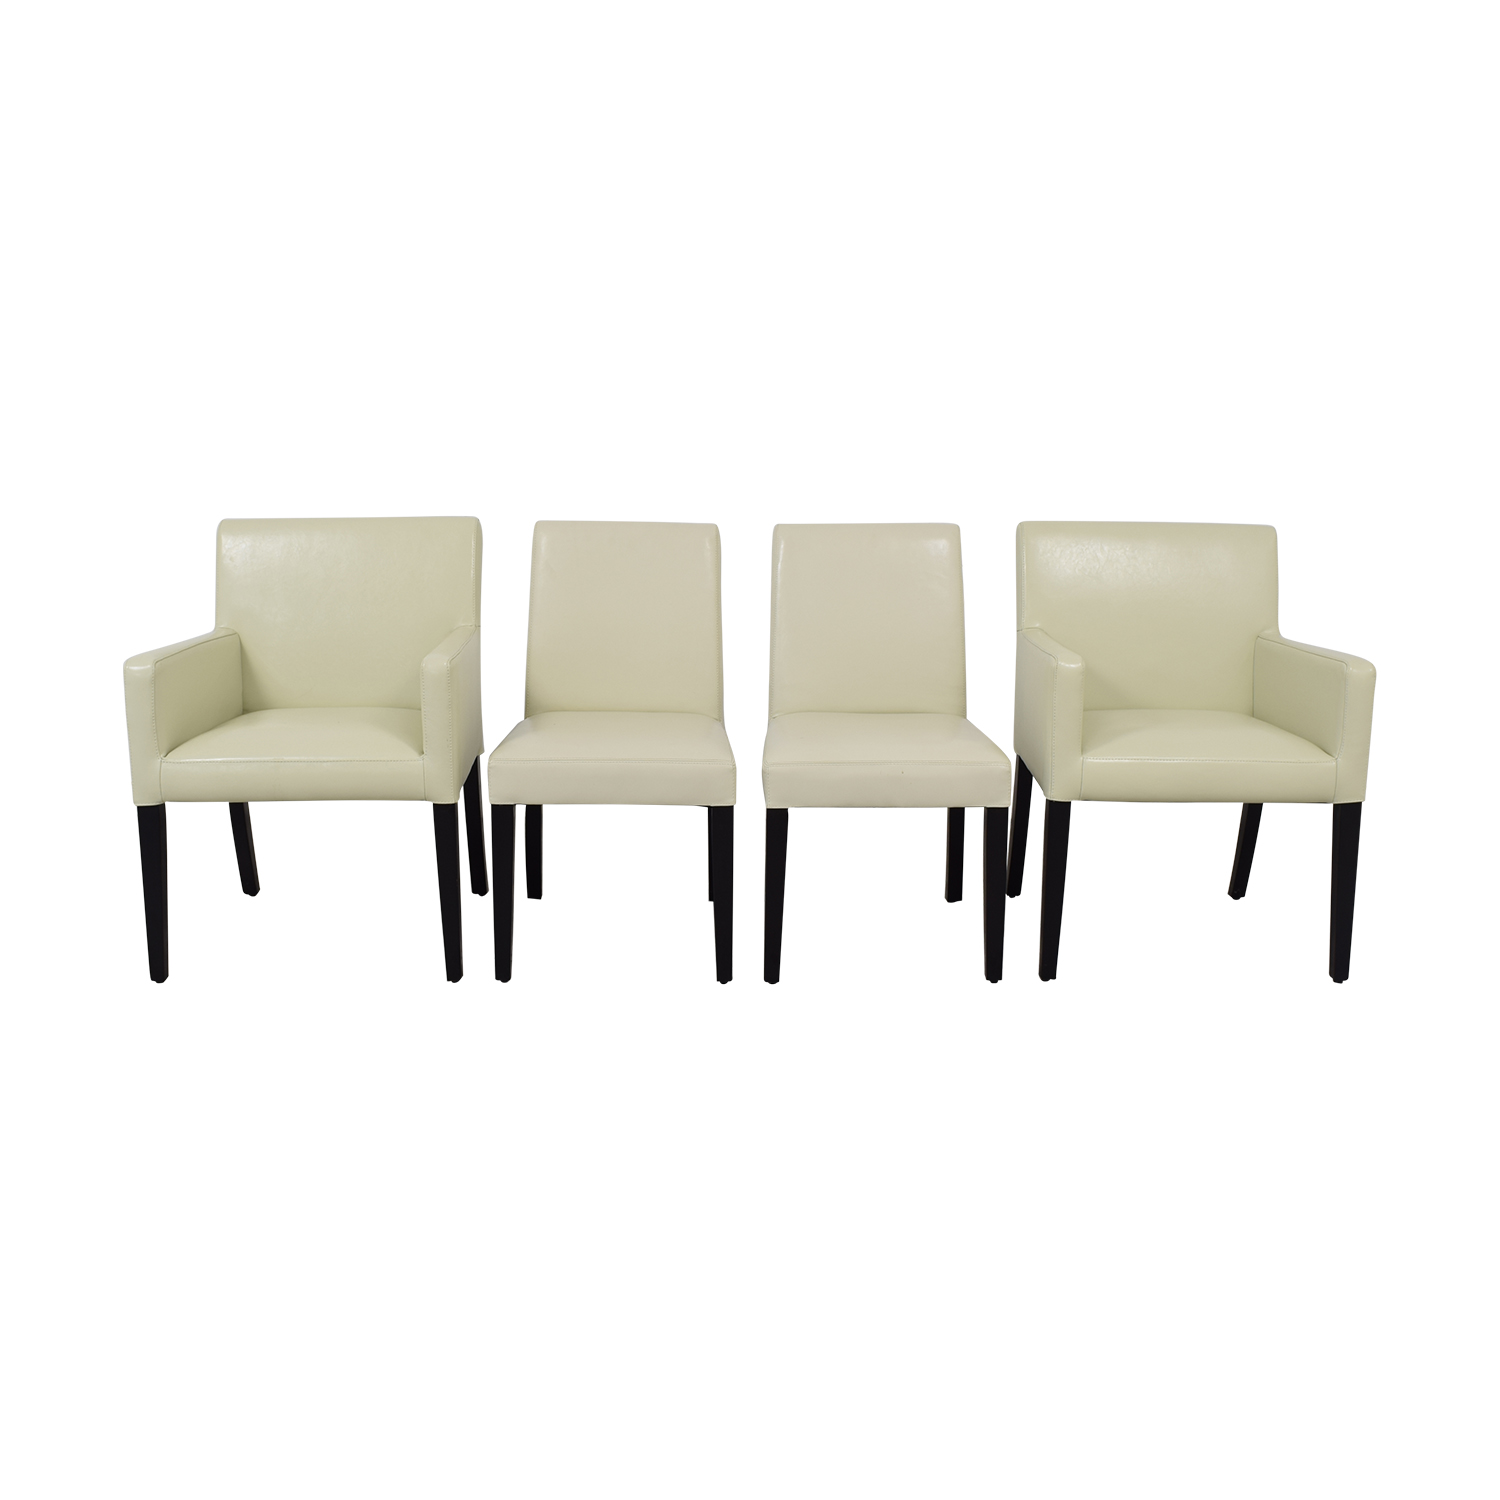 Crate & Barrel Pullman Dining Chairs Crate & Barrel